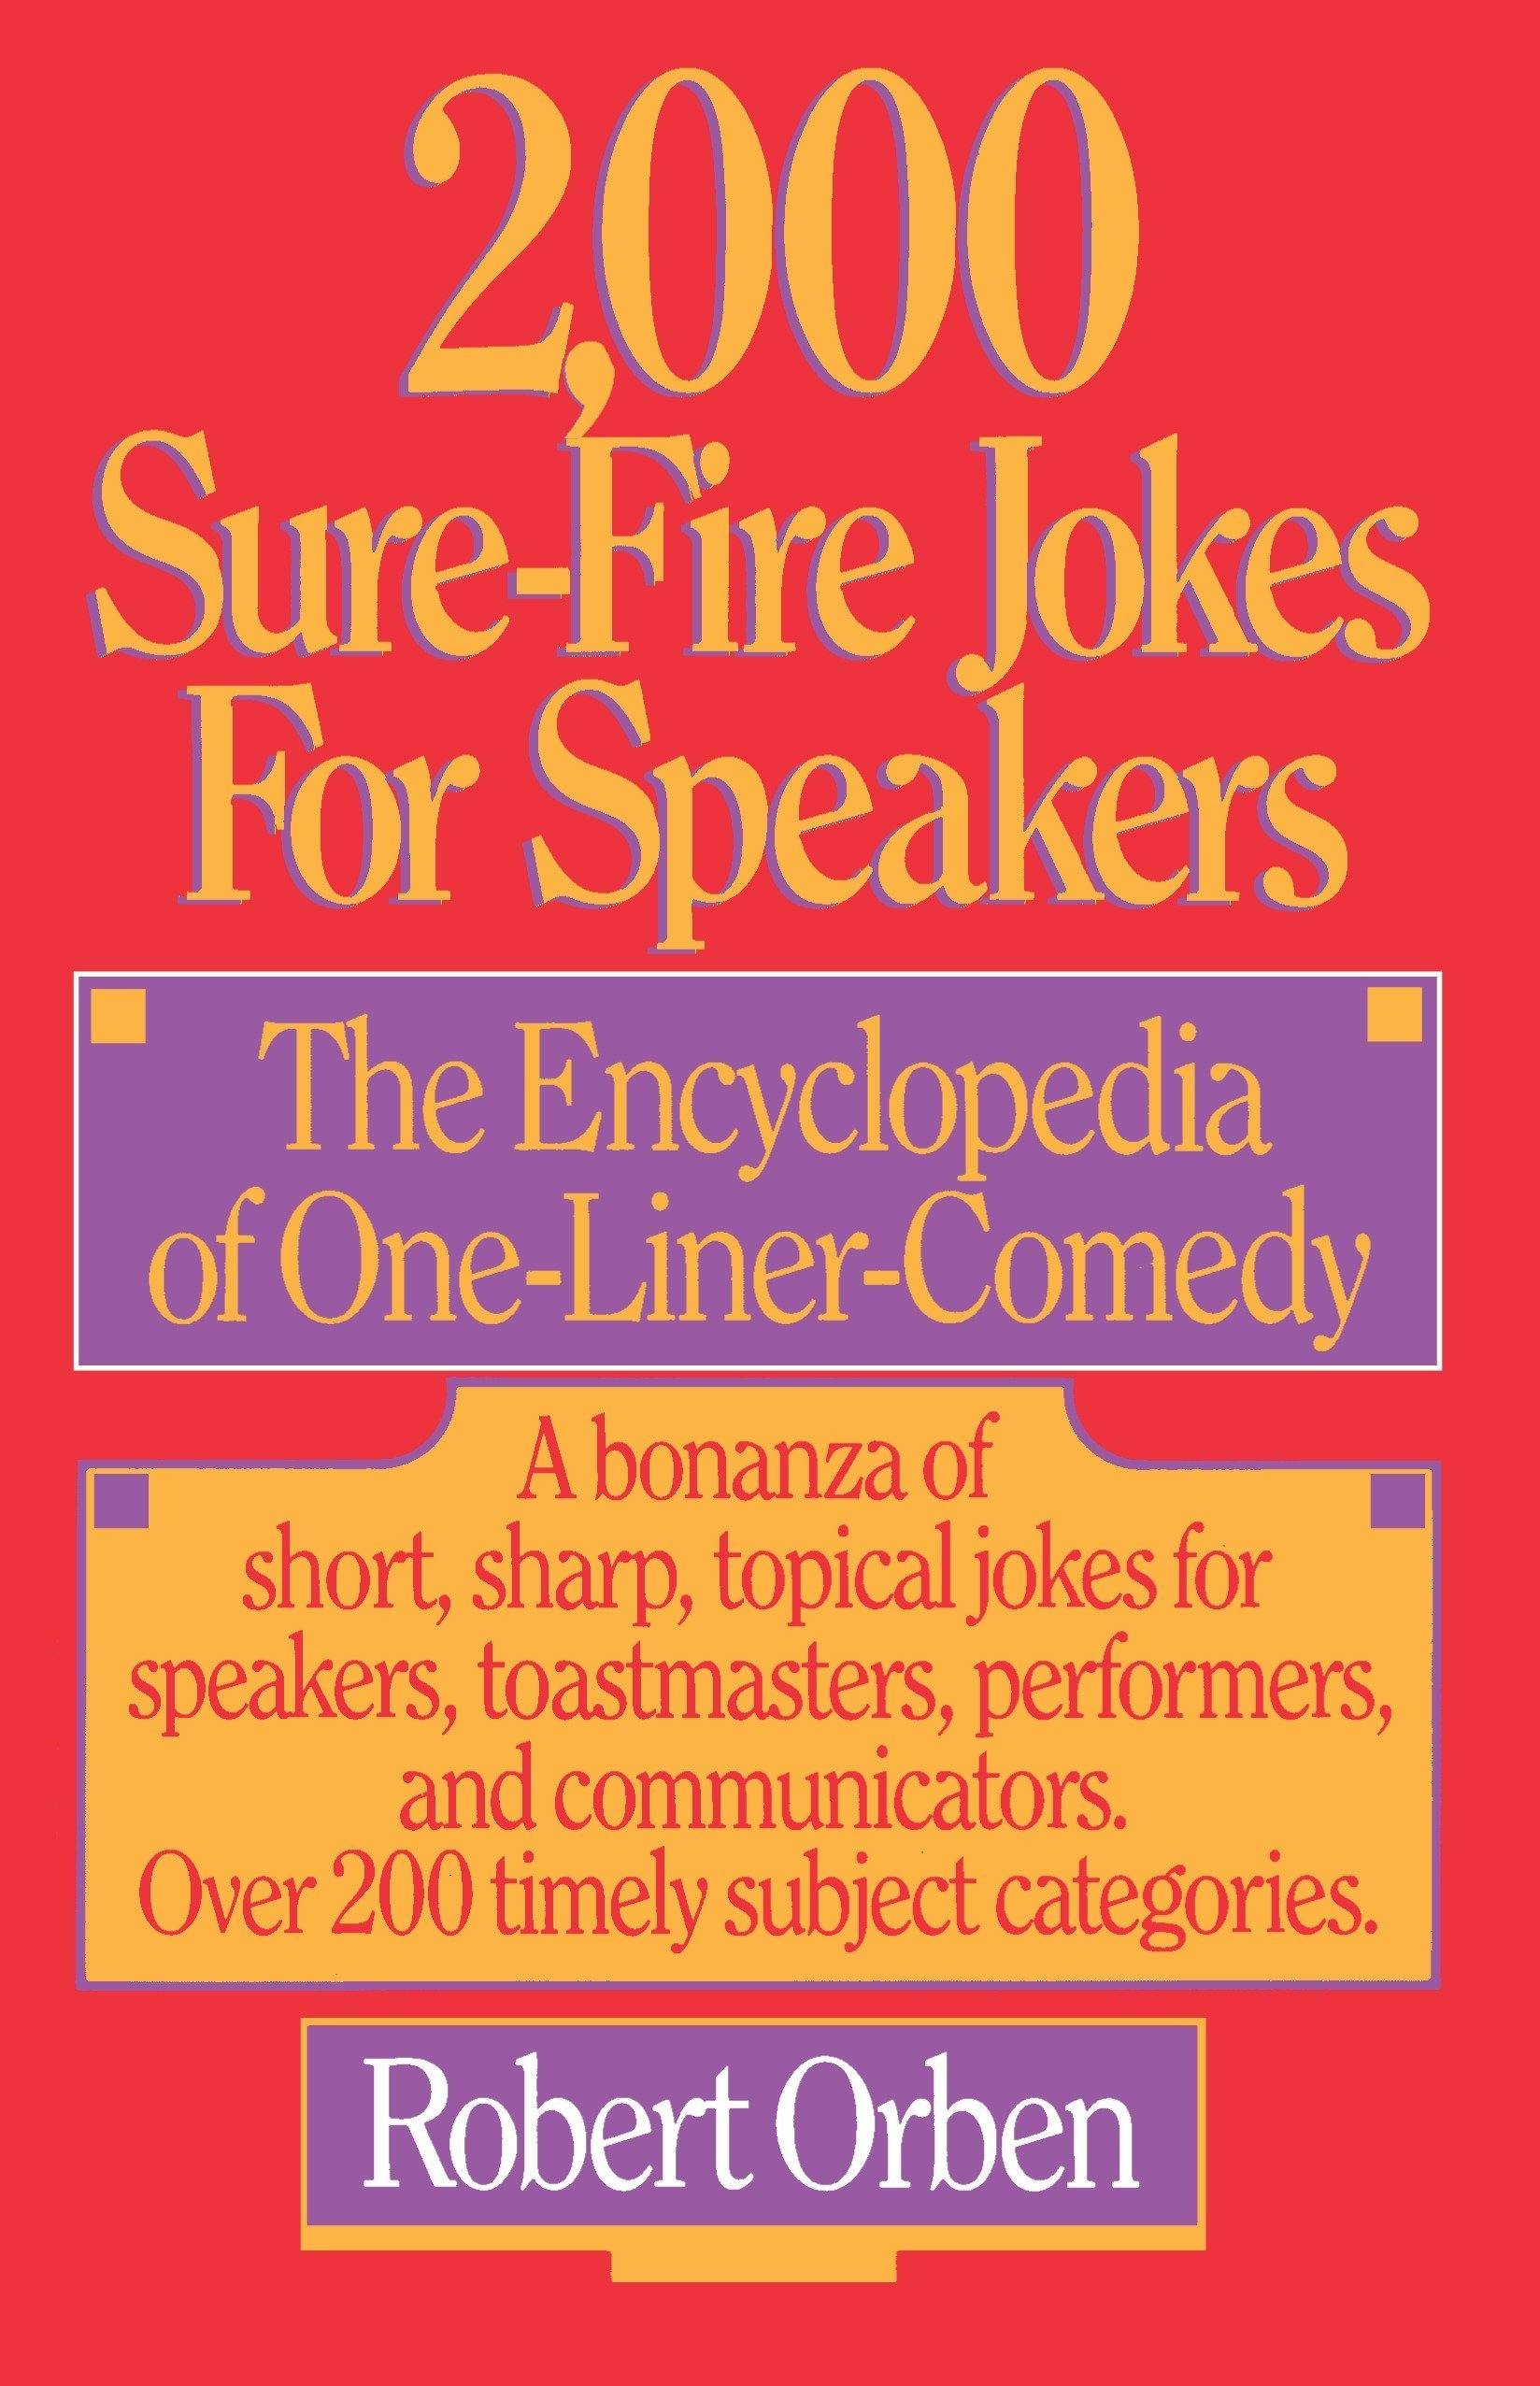 2,000 Sure-Fire Jokes for Speakers: The Encyclopedia of One-Liner Comedy by Main Street Books